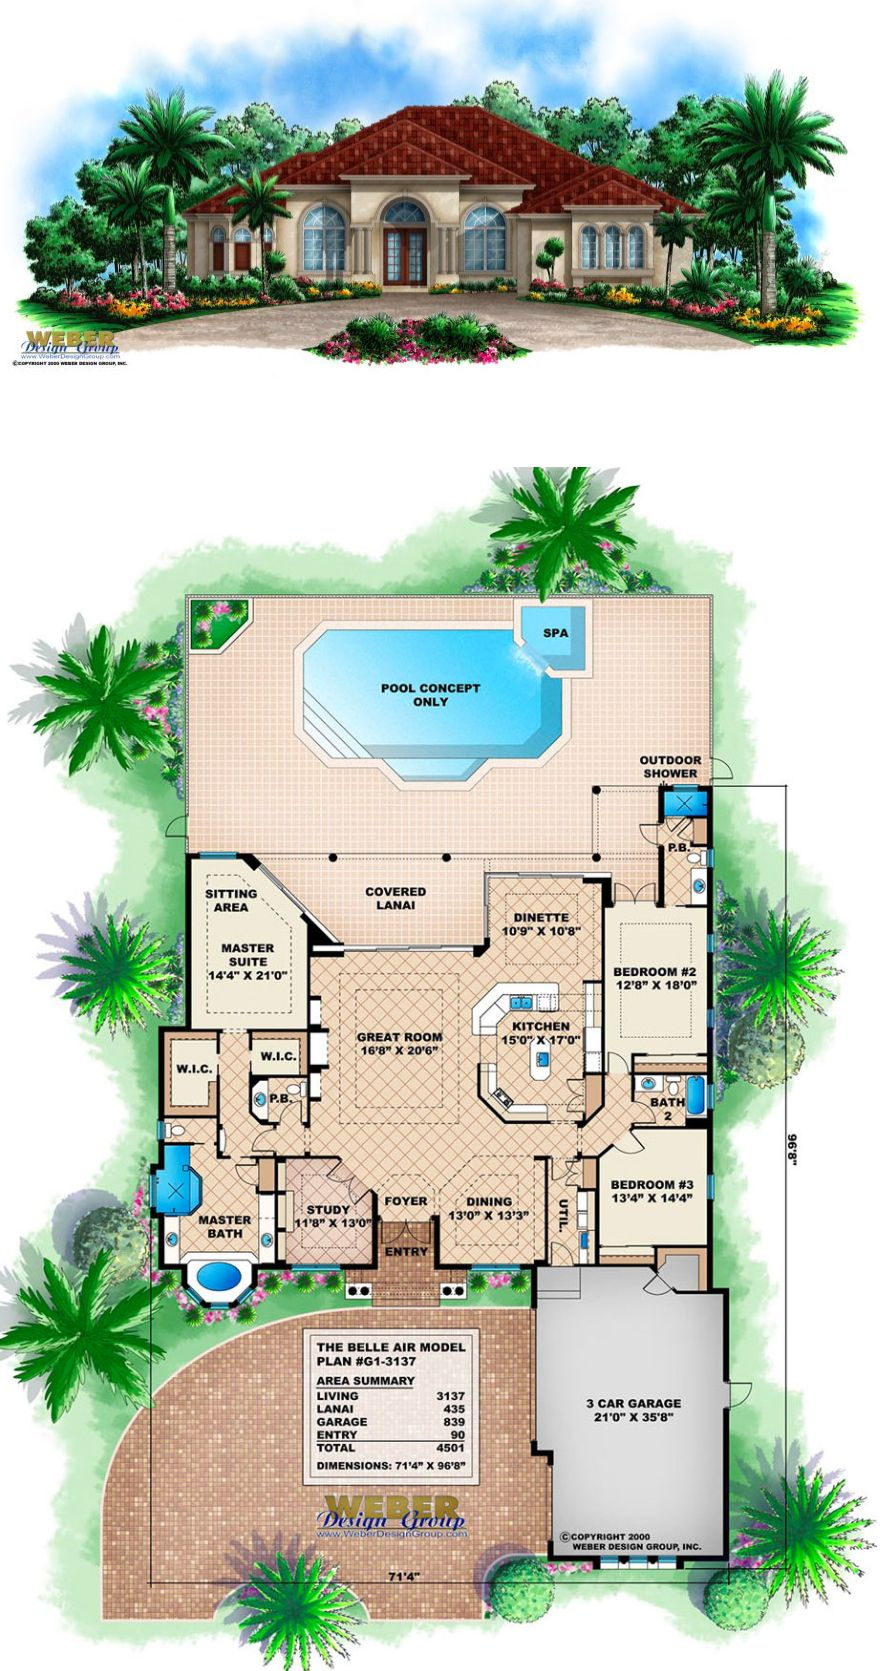 Belle Air House Plan In 2020 Mediterranean House Plans Dream